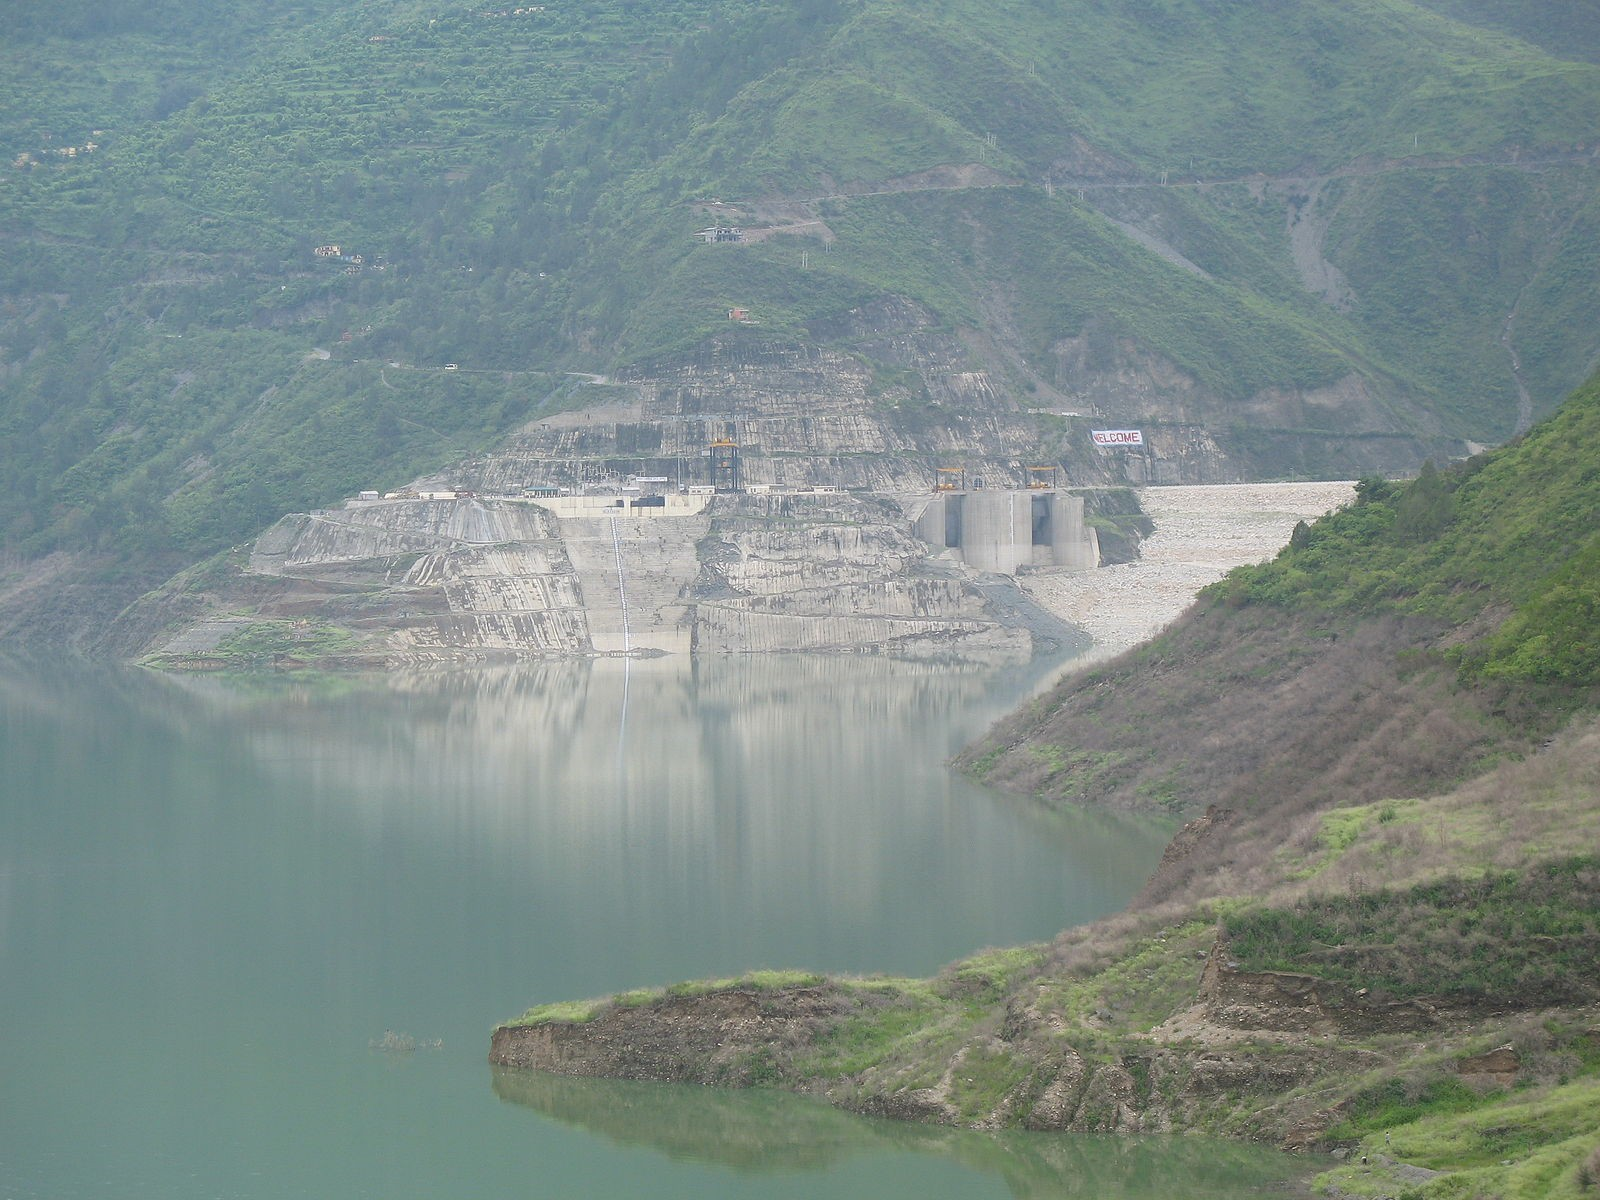 The Tehri Dam in Uttarakhand. Opposition to the Dam formed a focal point of Sunderlal Bahuguna's activism. Image credit: Jeewannegi, CC BY-SA 3.0 <https://creativecommons.org/licenses/by-sa/3.0>, via Wikimedia Commons